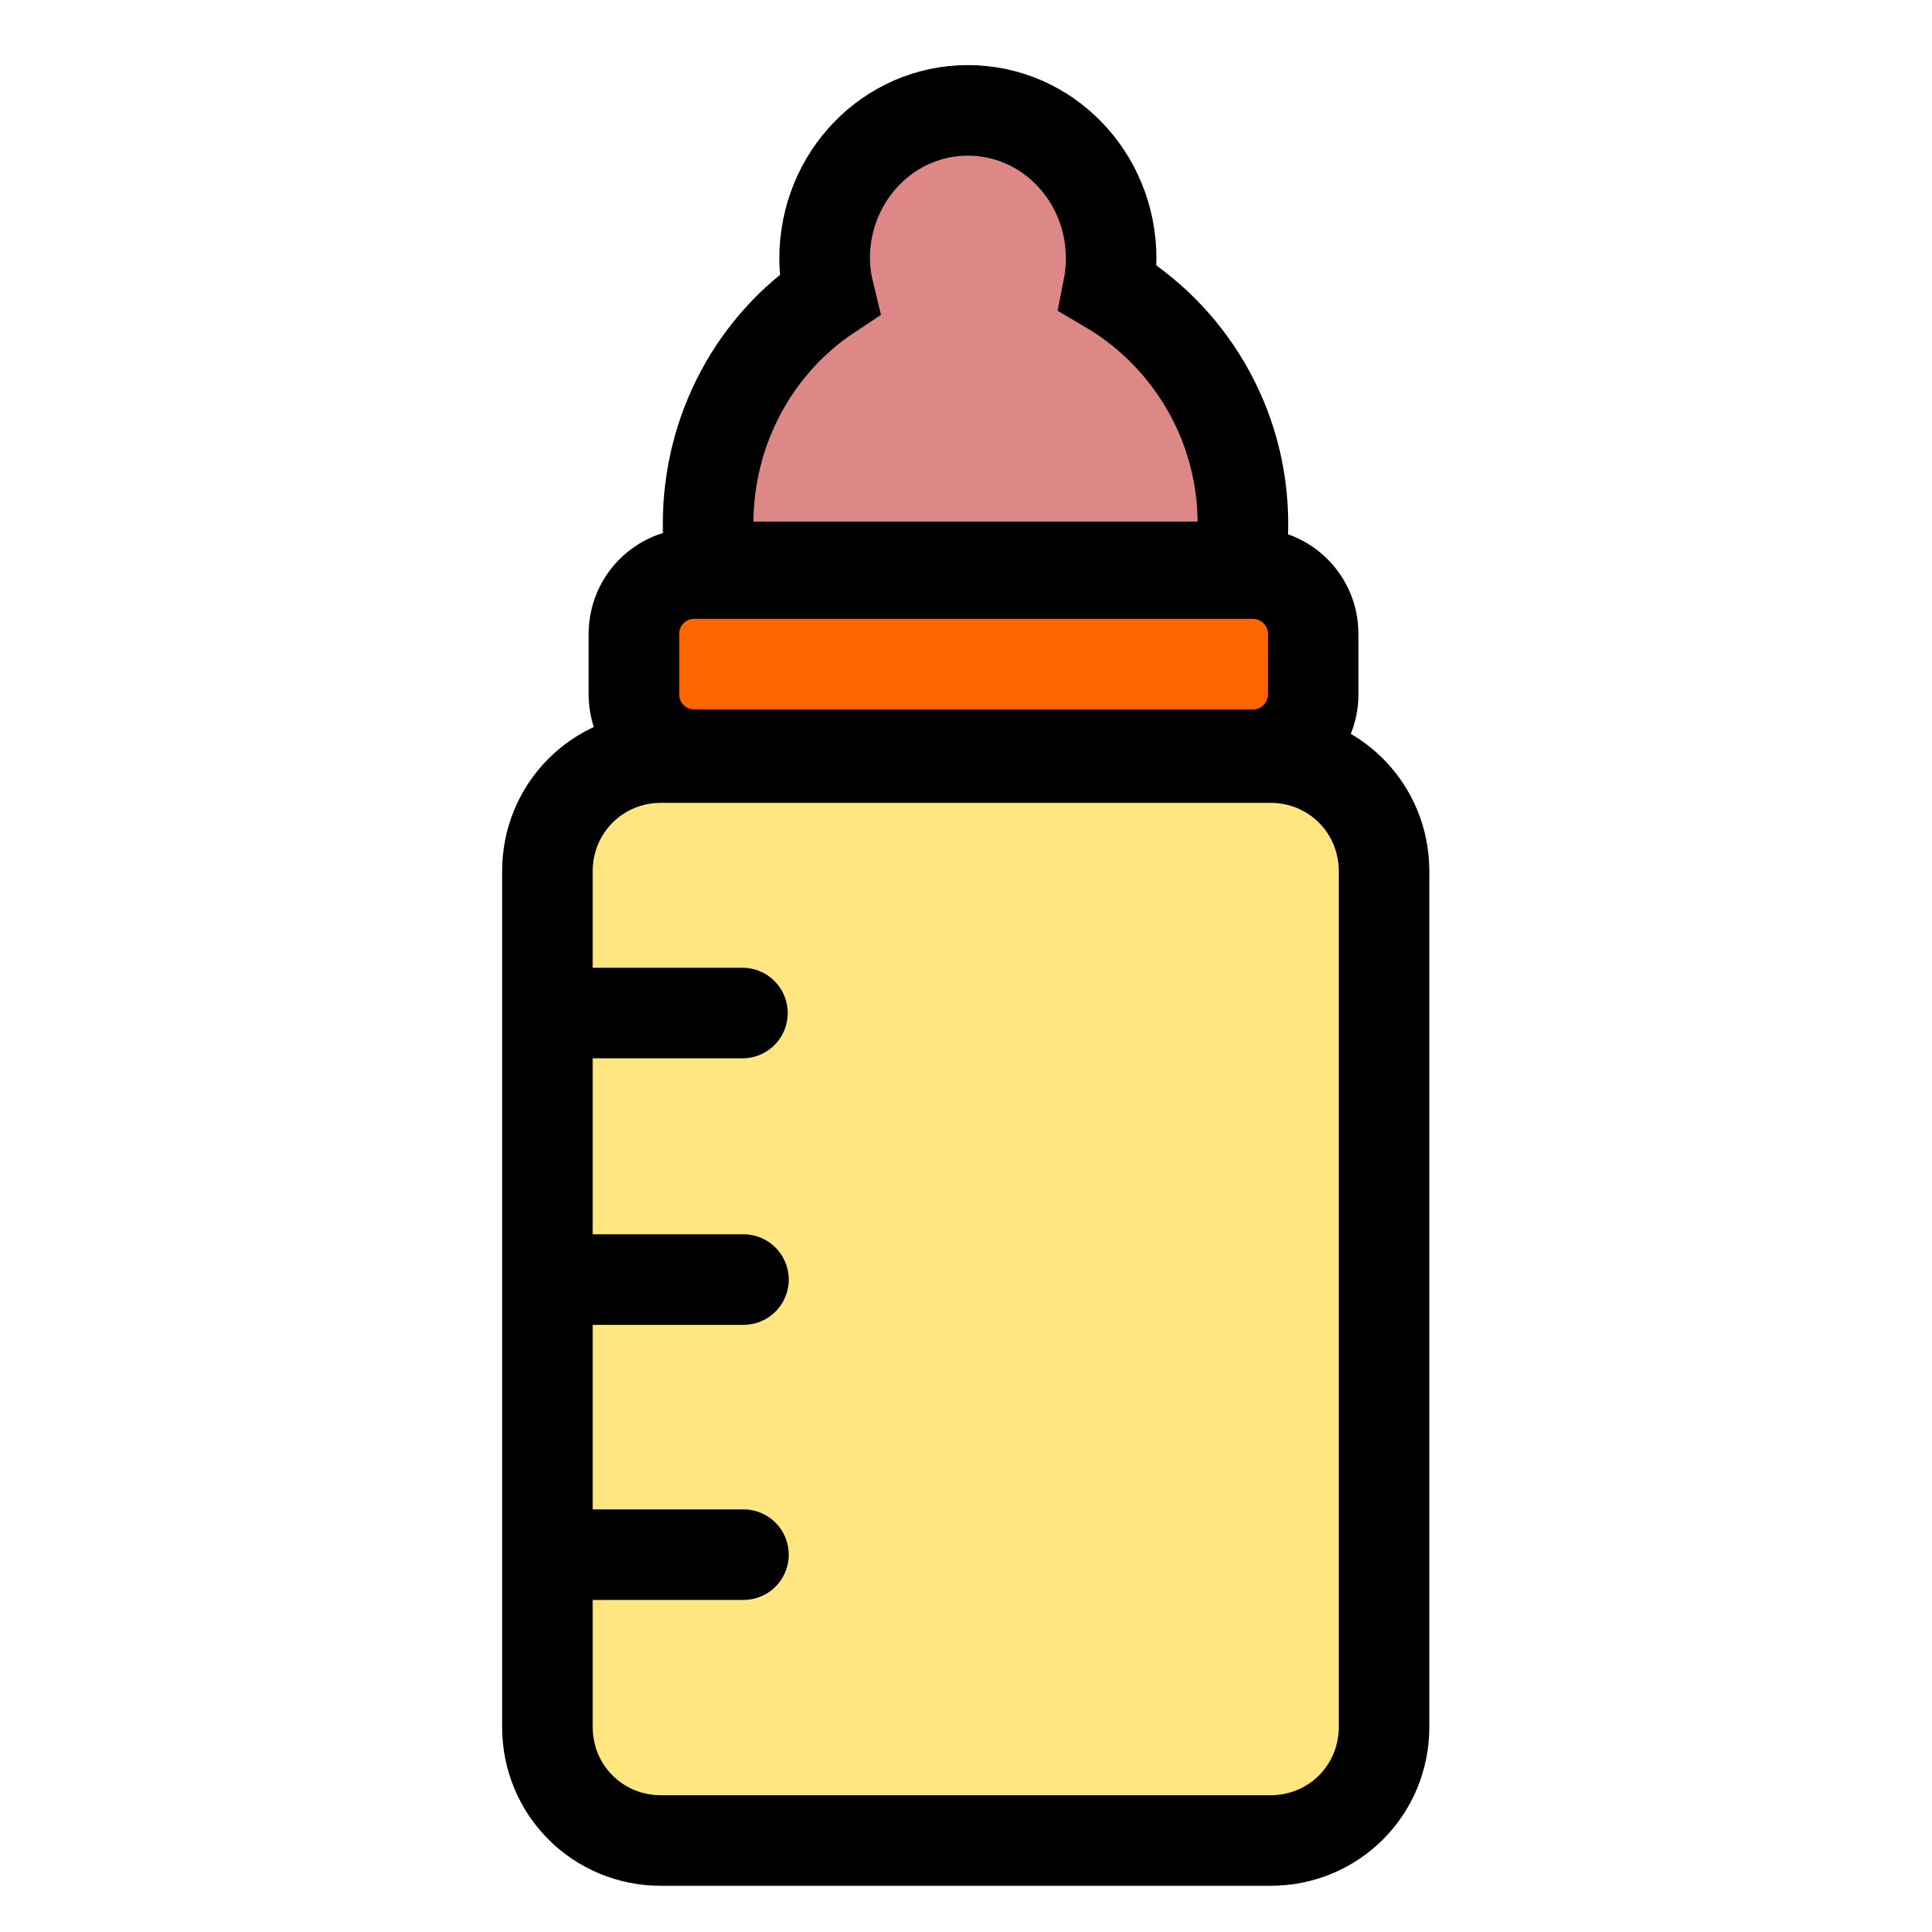 Baby bottle icon by pitr